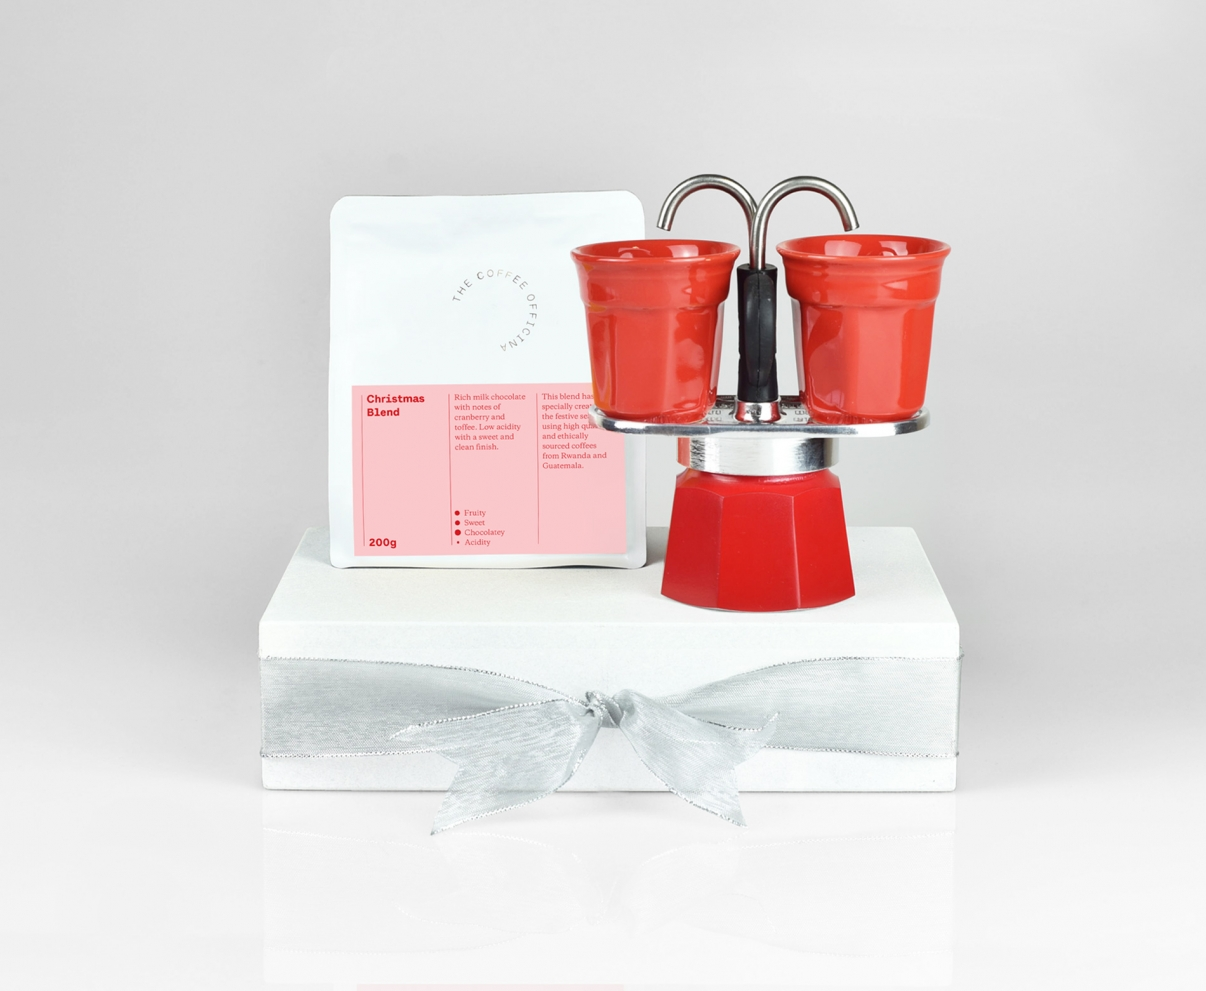 The Coffee Officina Bialetti Mini Express stovetop and Christmas Blend gift set